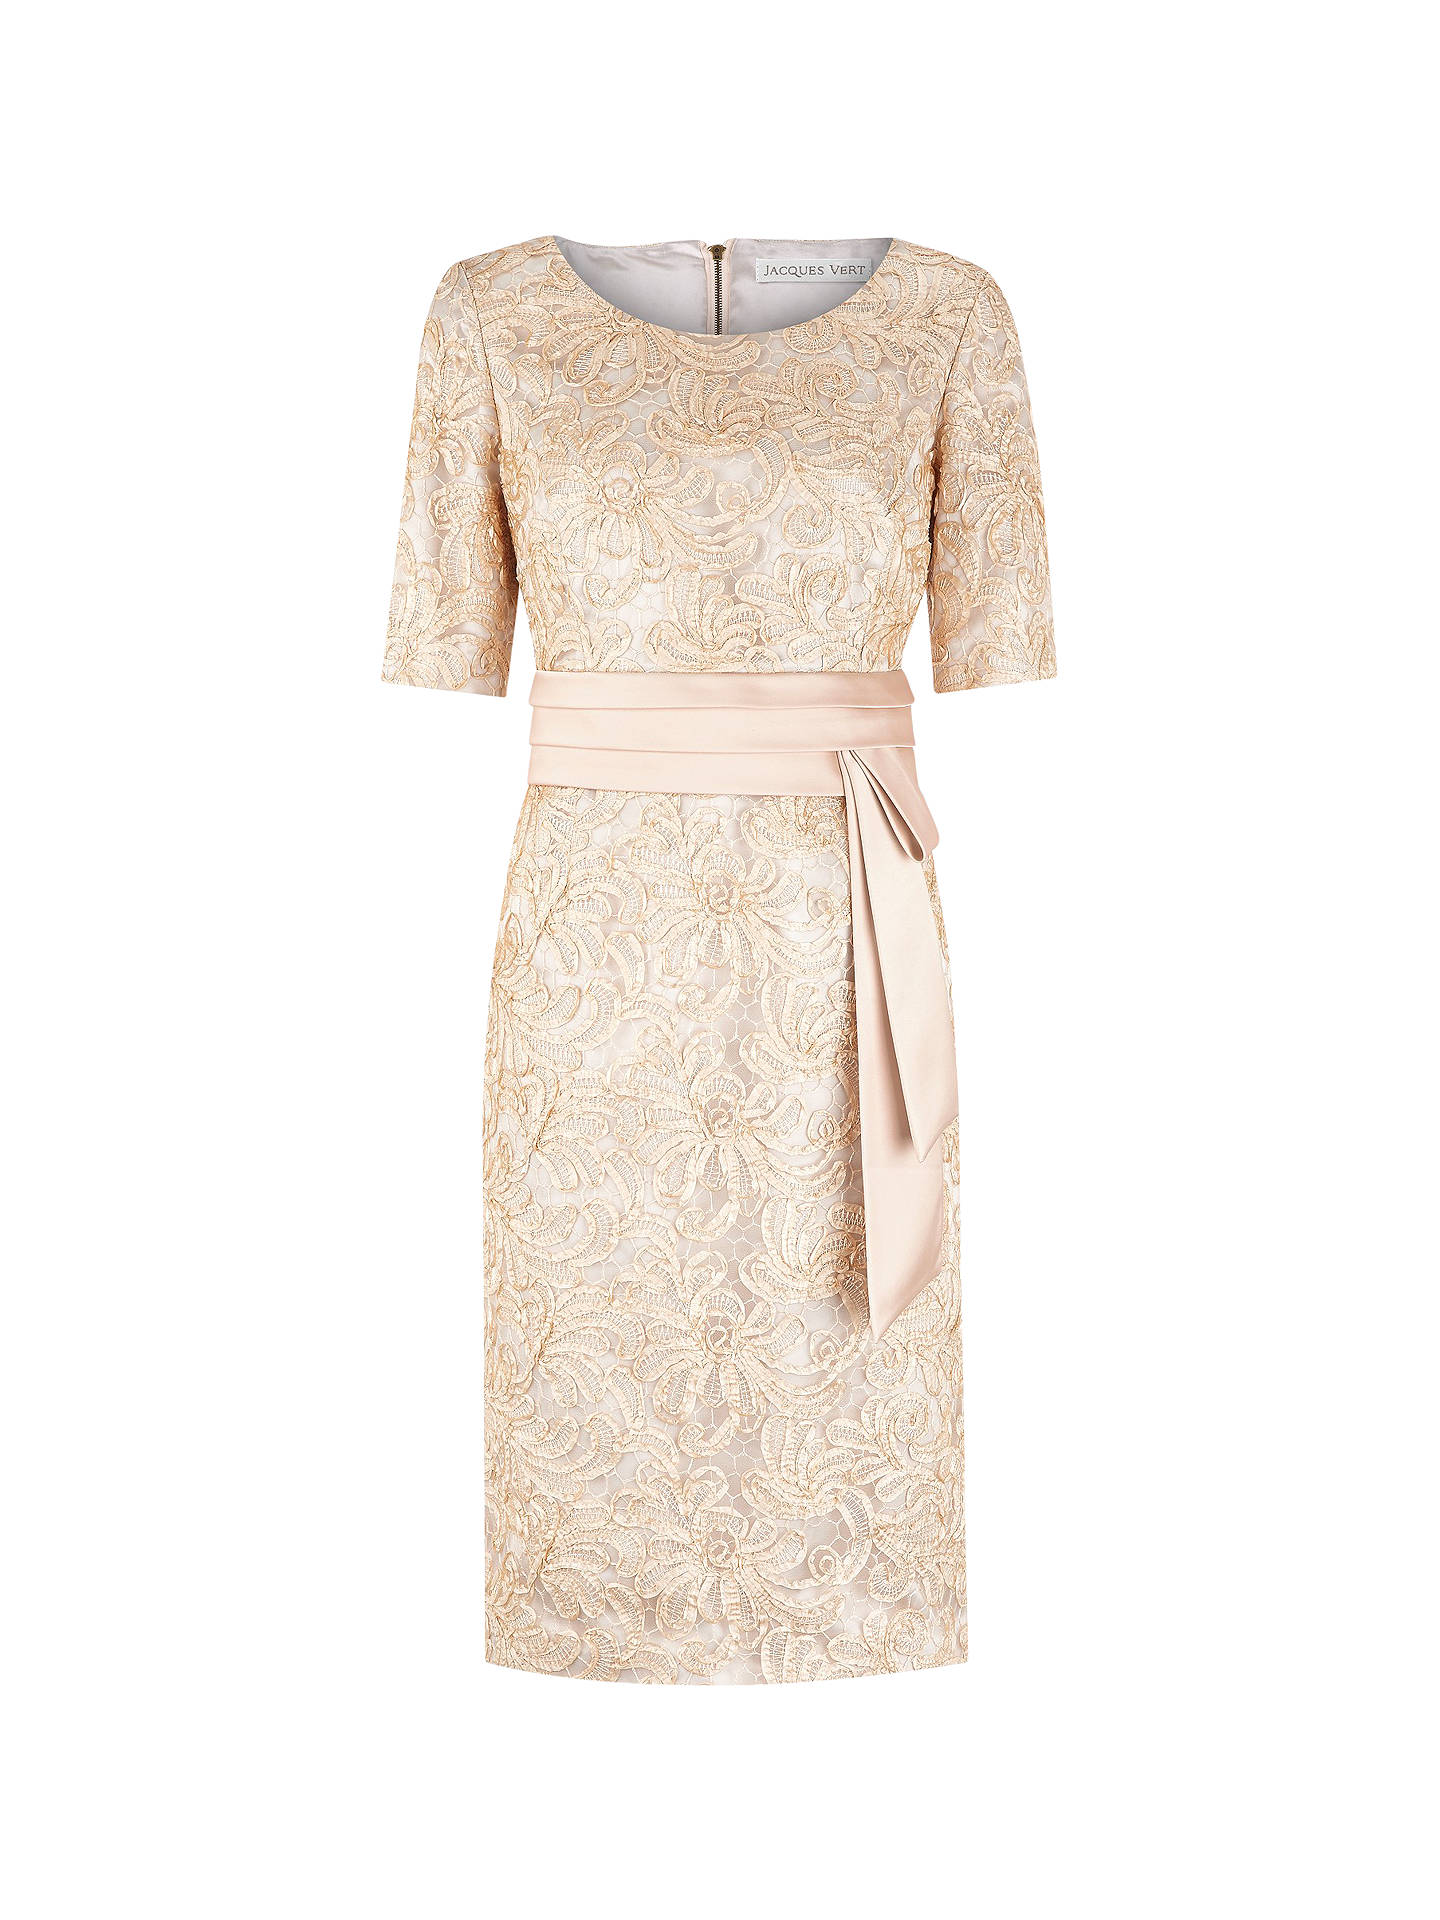 Buy Jacques Vert Ribbon Lace Dress, Gold, 24 Online at johnlewis.com